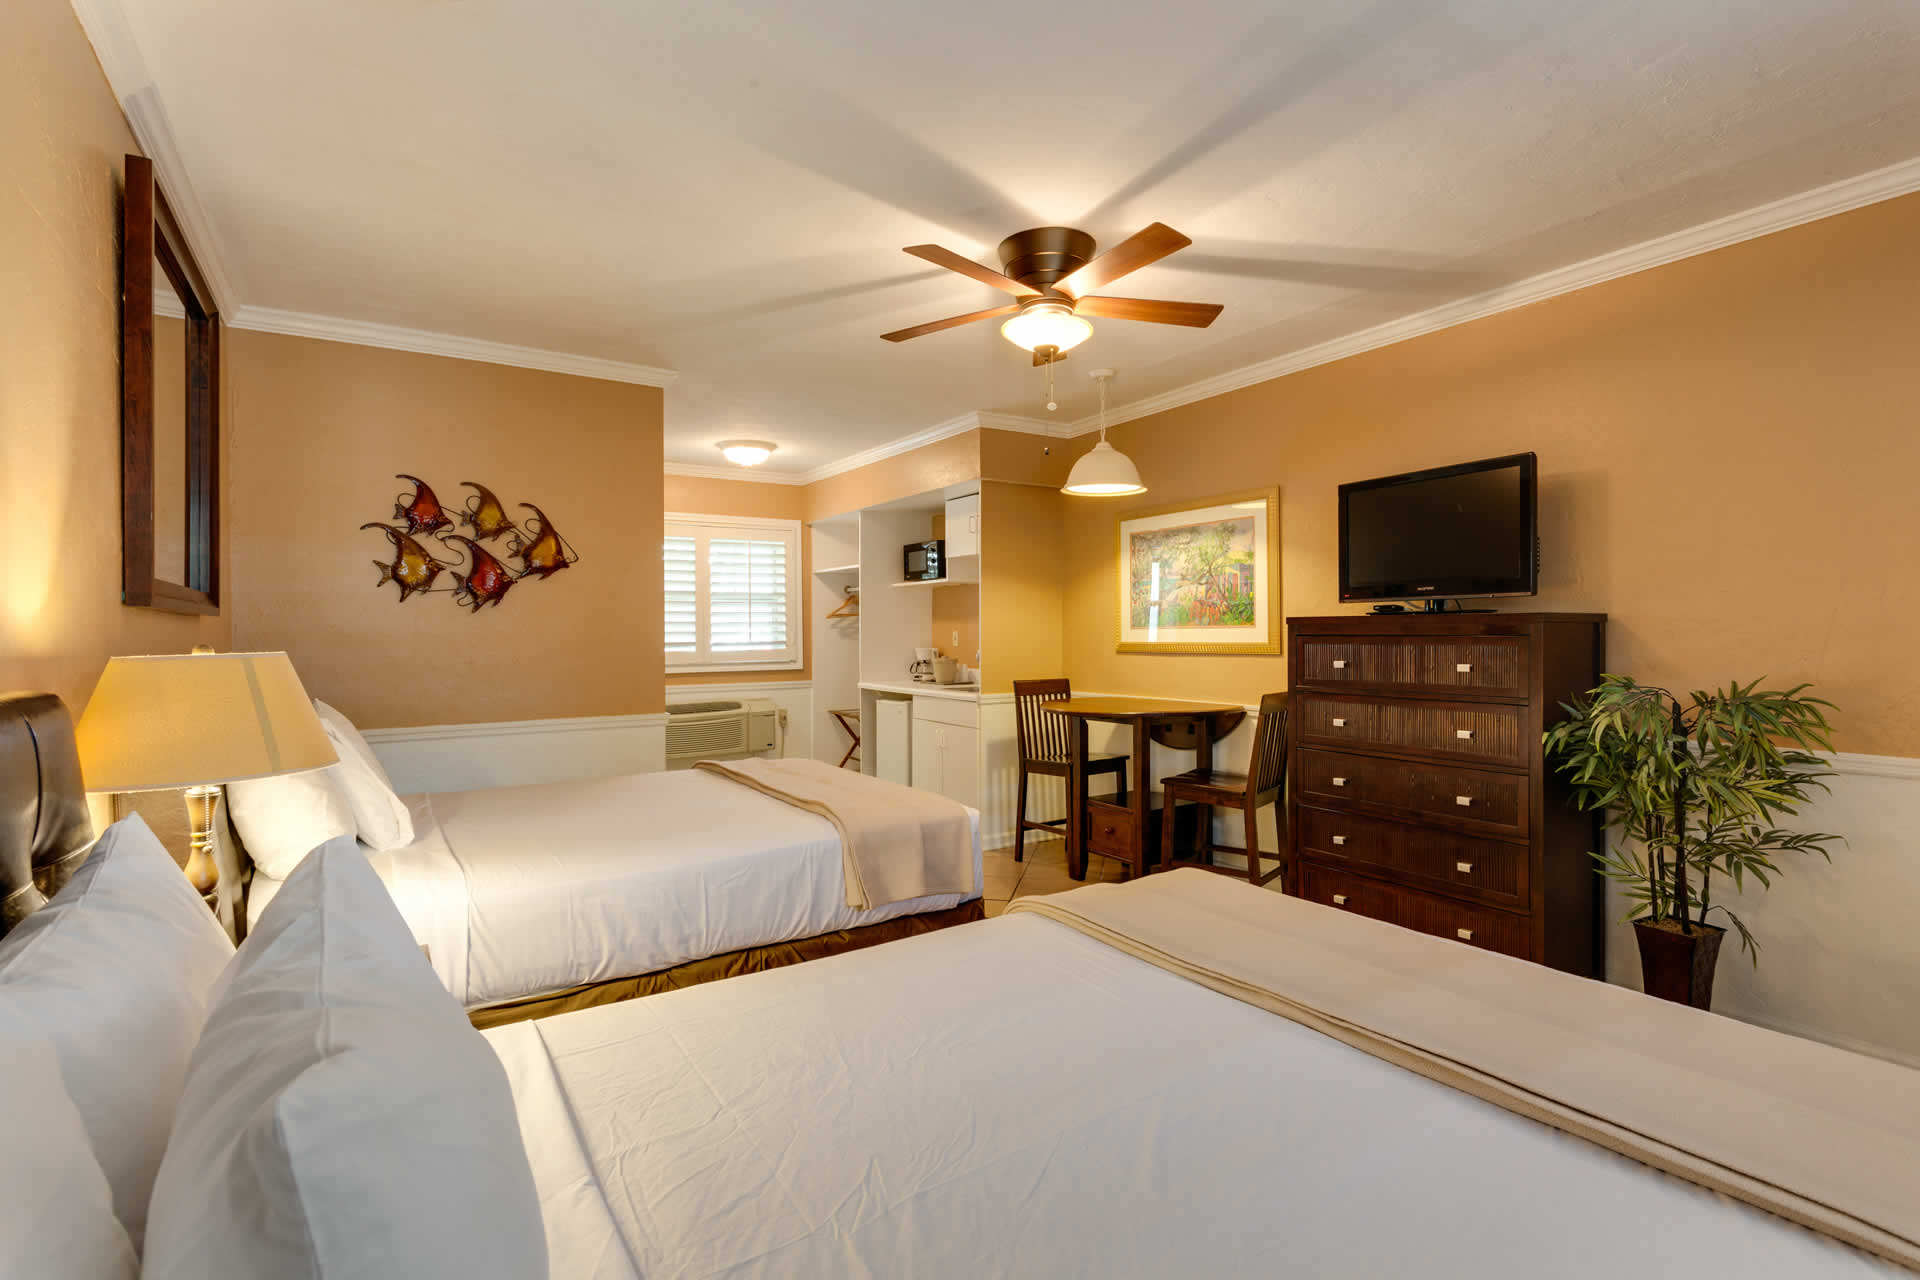 Room 114 at Lemon Tree Inn of Naples, FL